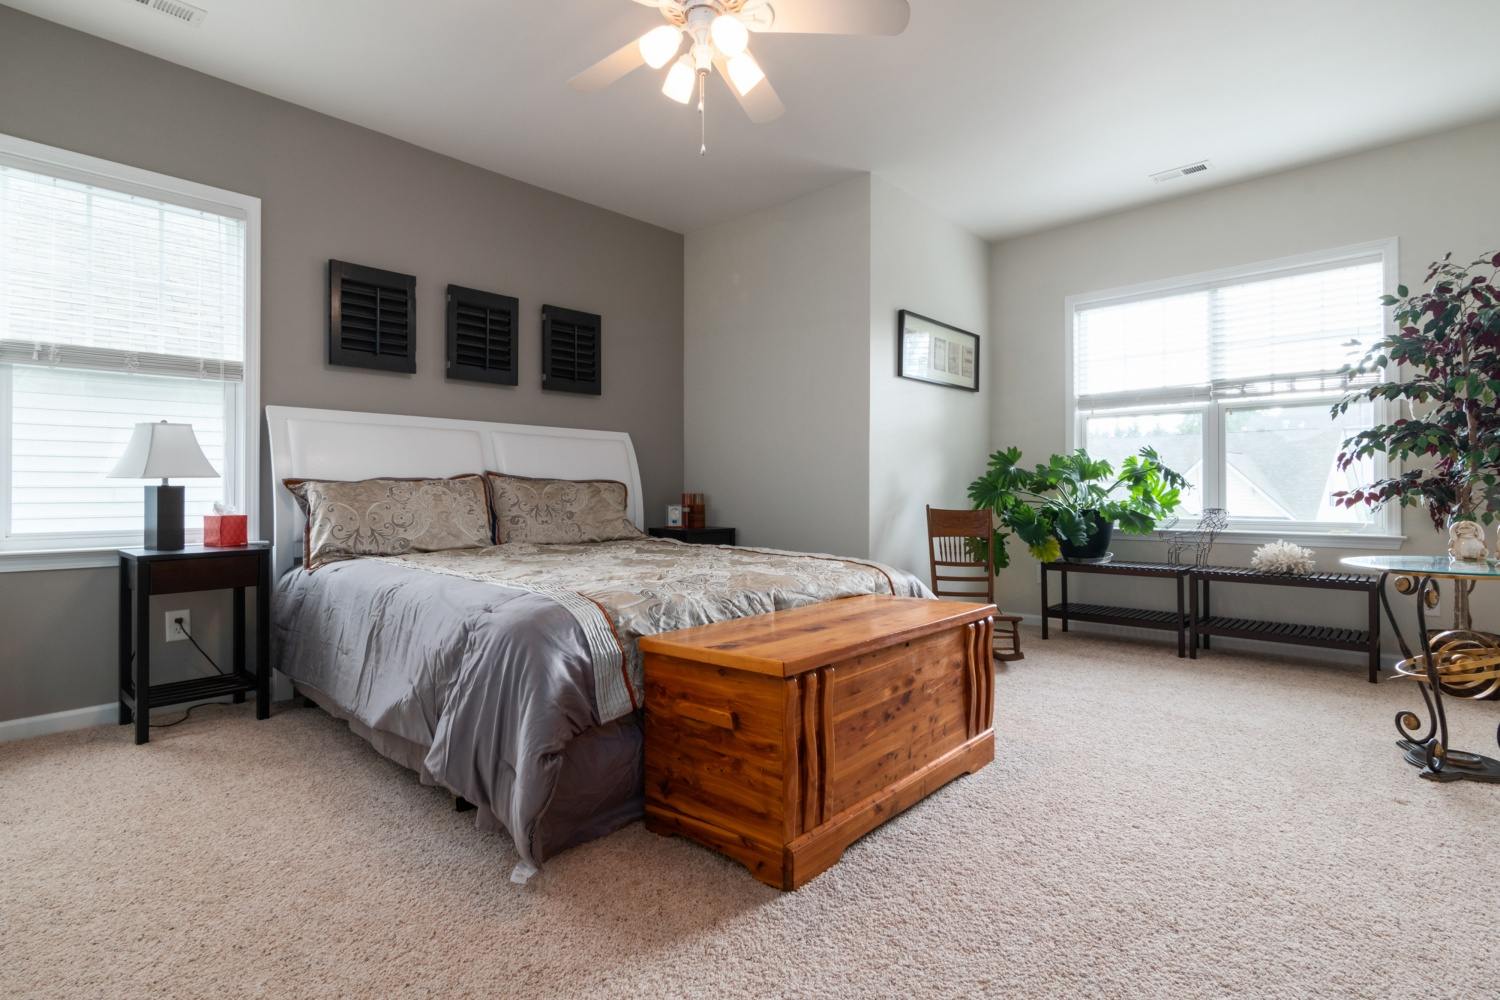 3 Impressive Tips on How to Reduce Noise in Real Estate Image Editing